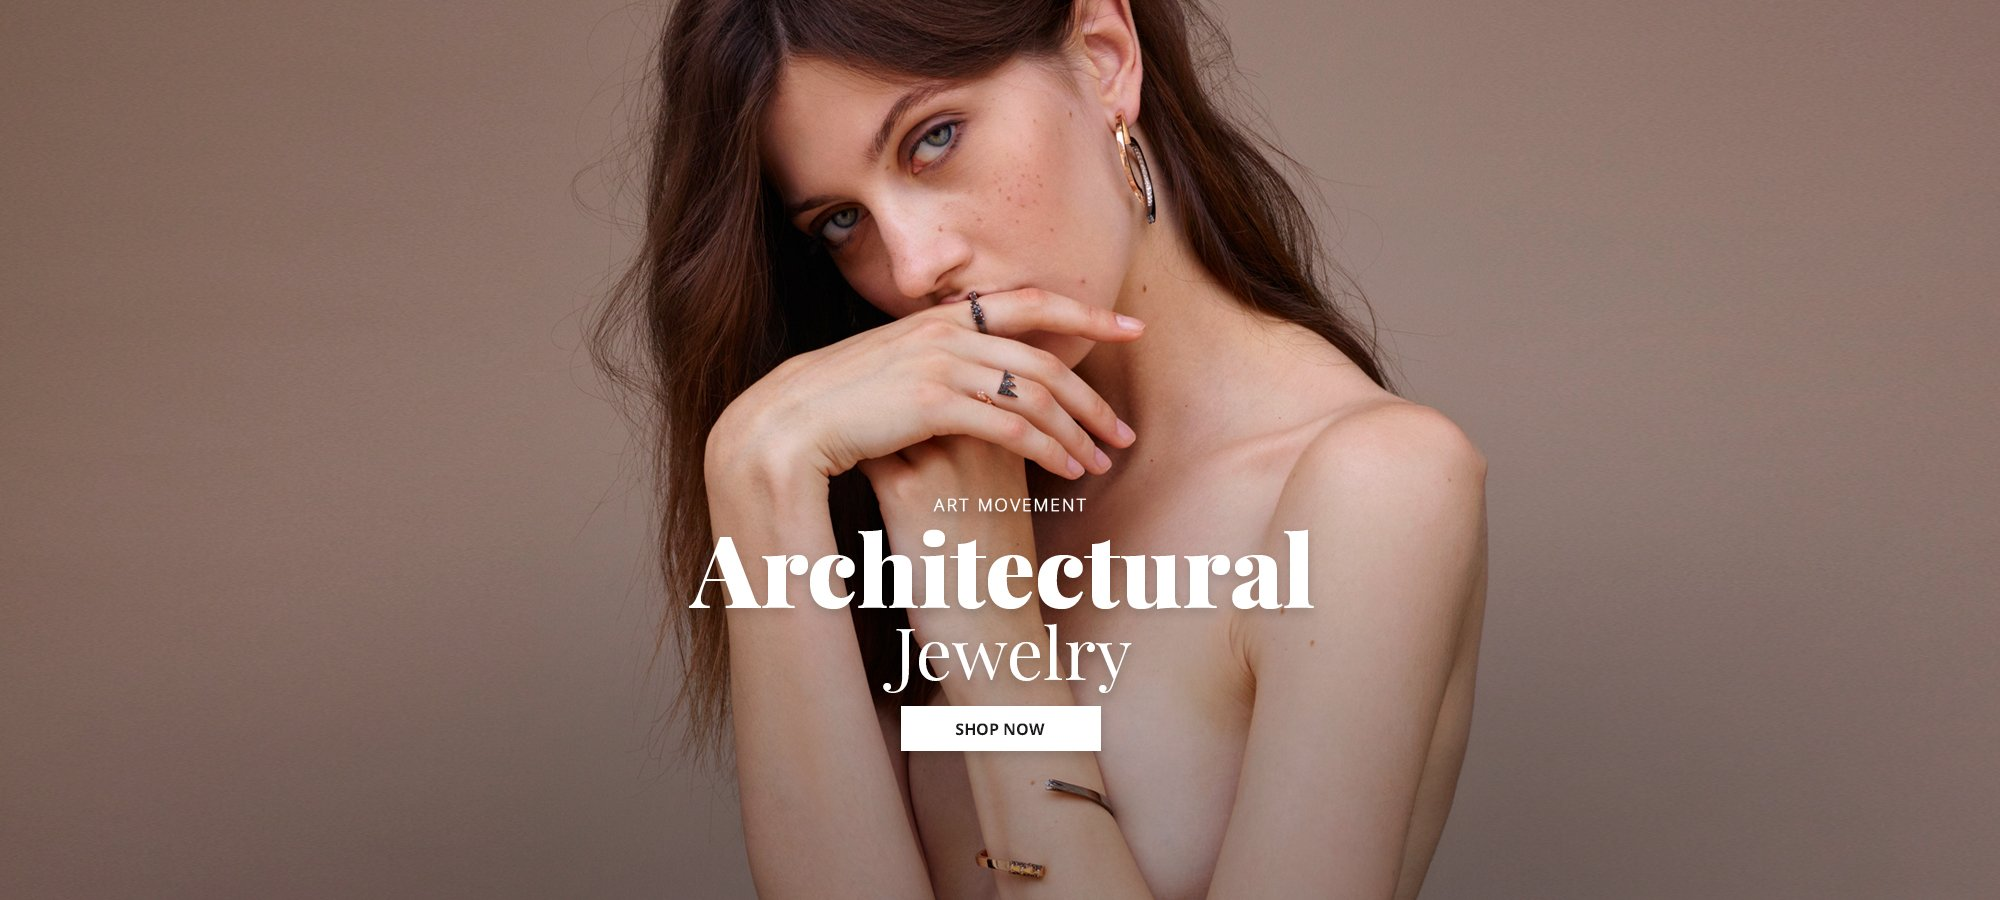 Architectural Jewelry